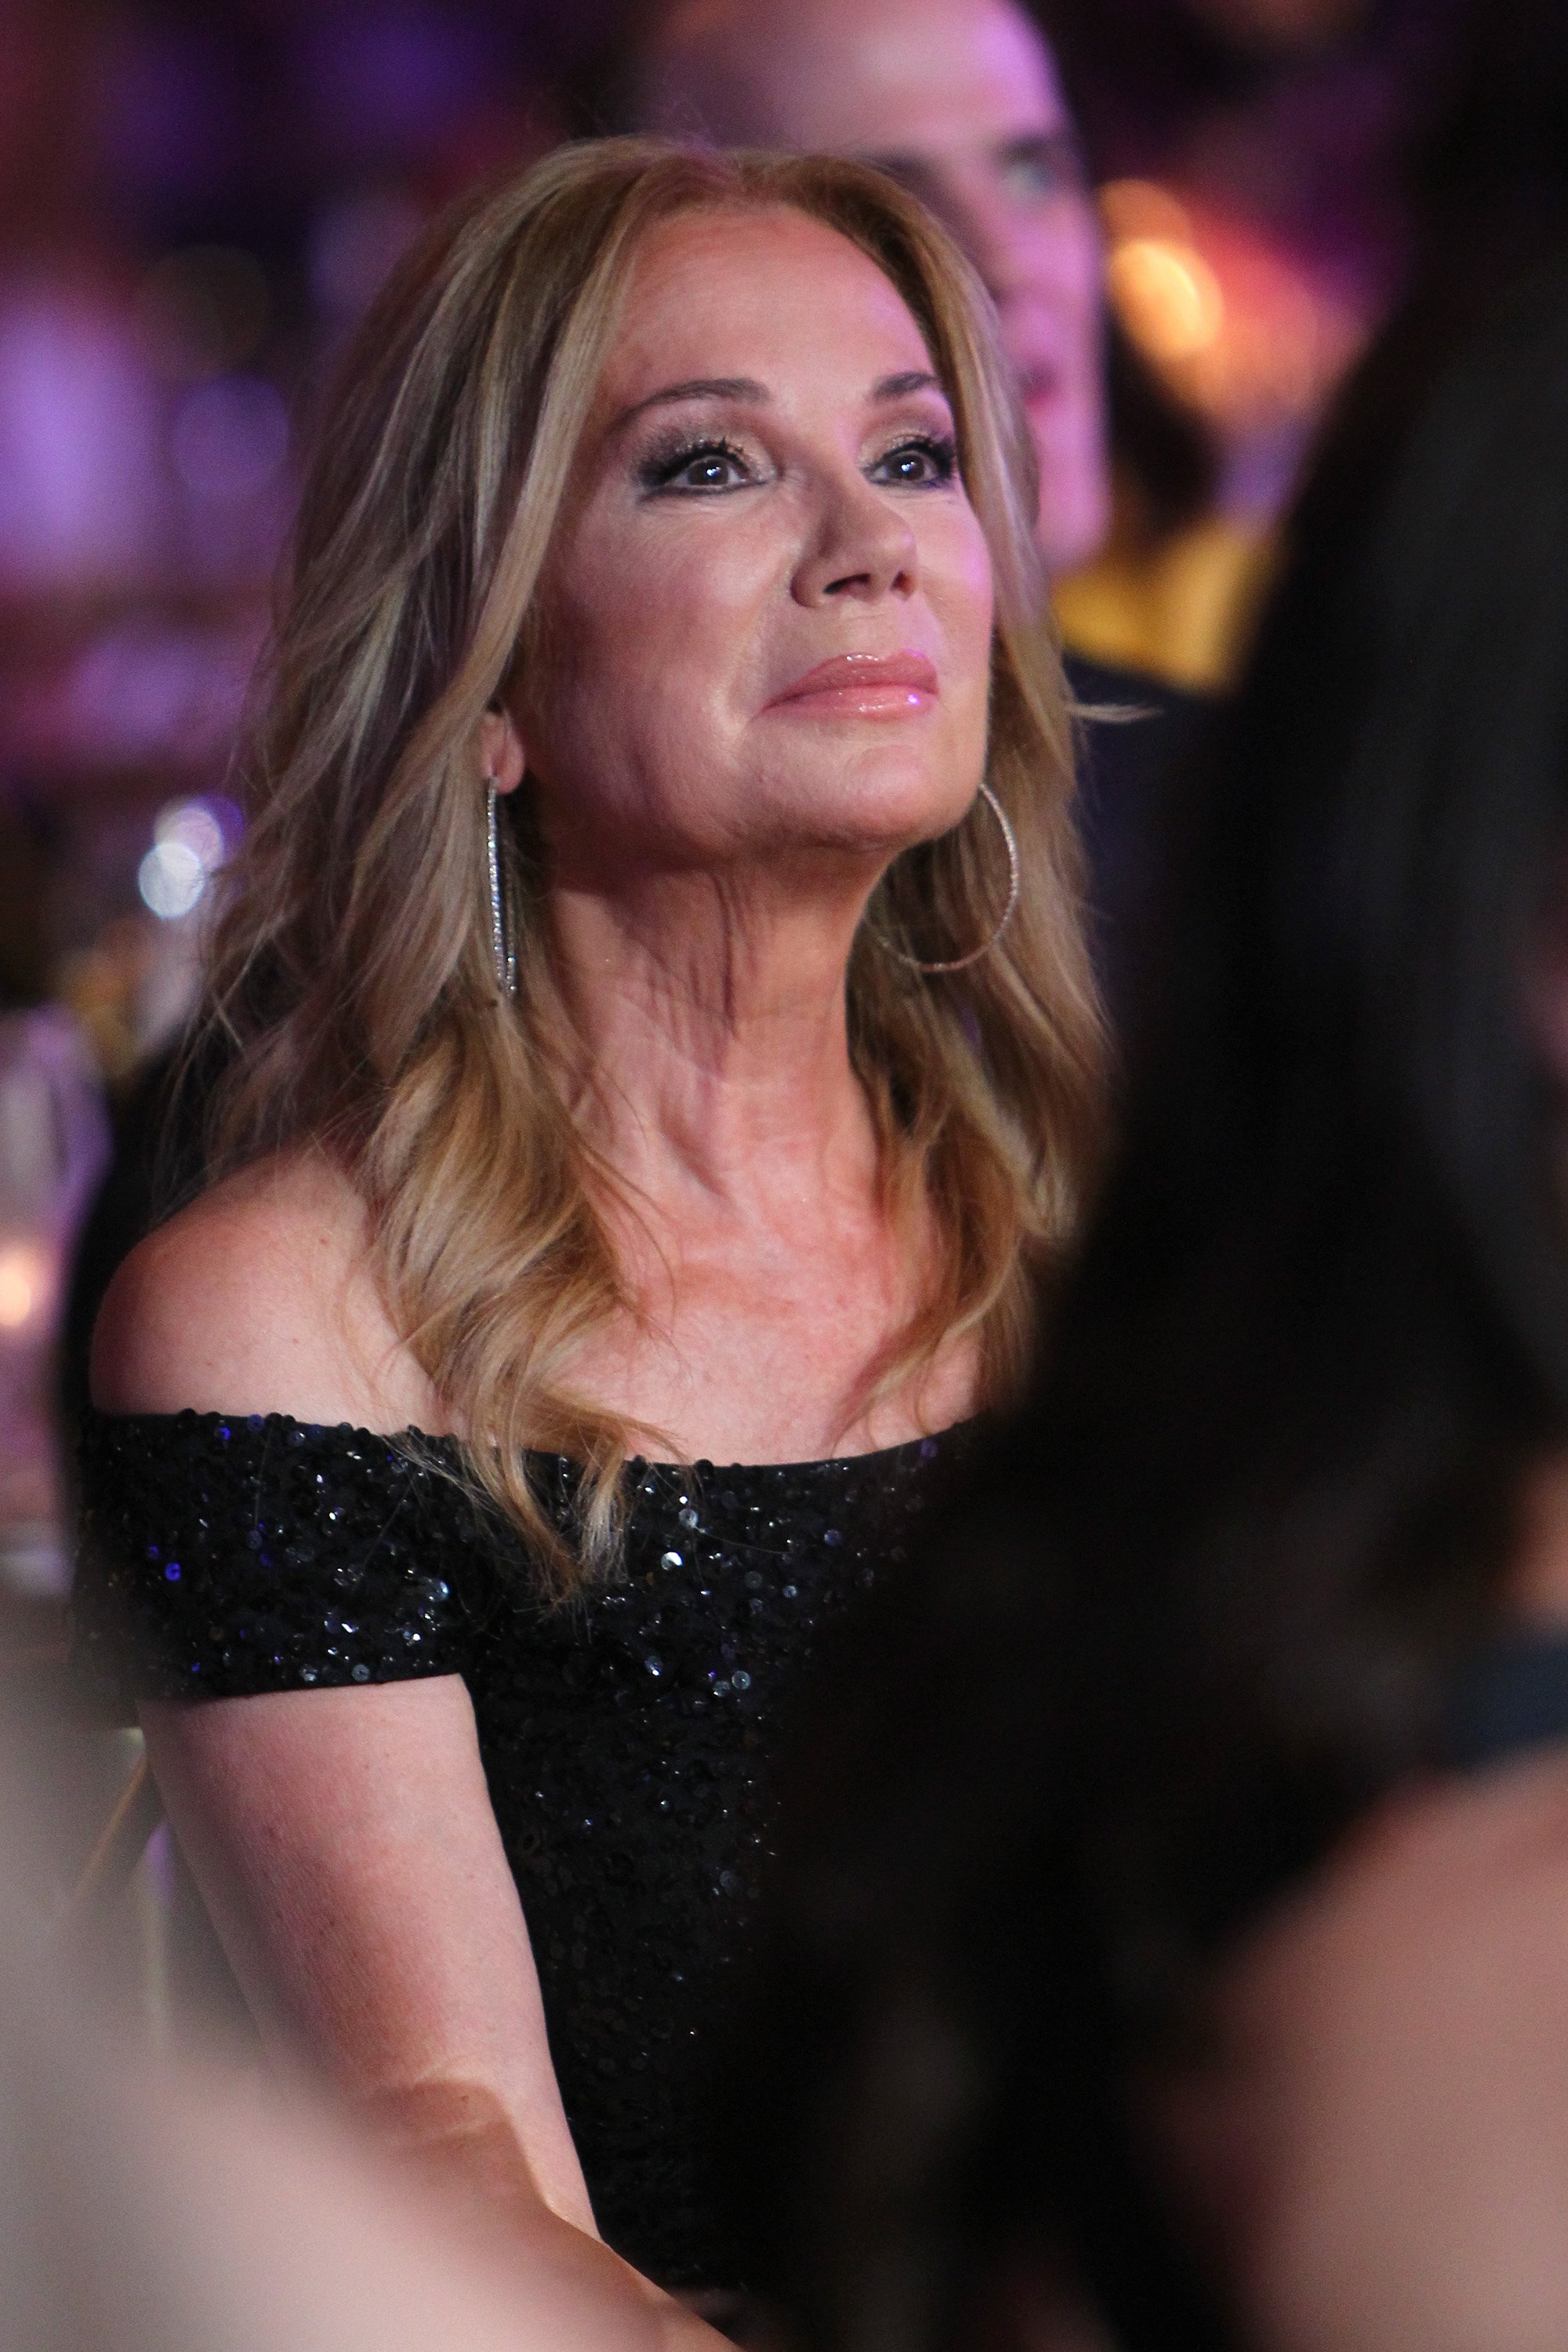 Kathie Lee Gifford attends the 41st Annual Gracie Awards at Regent Beverly Wilshire Hotel on May 24, 2016 | Photo: GettyImages